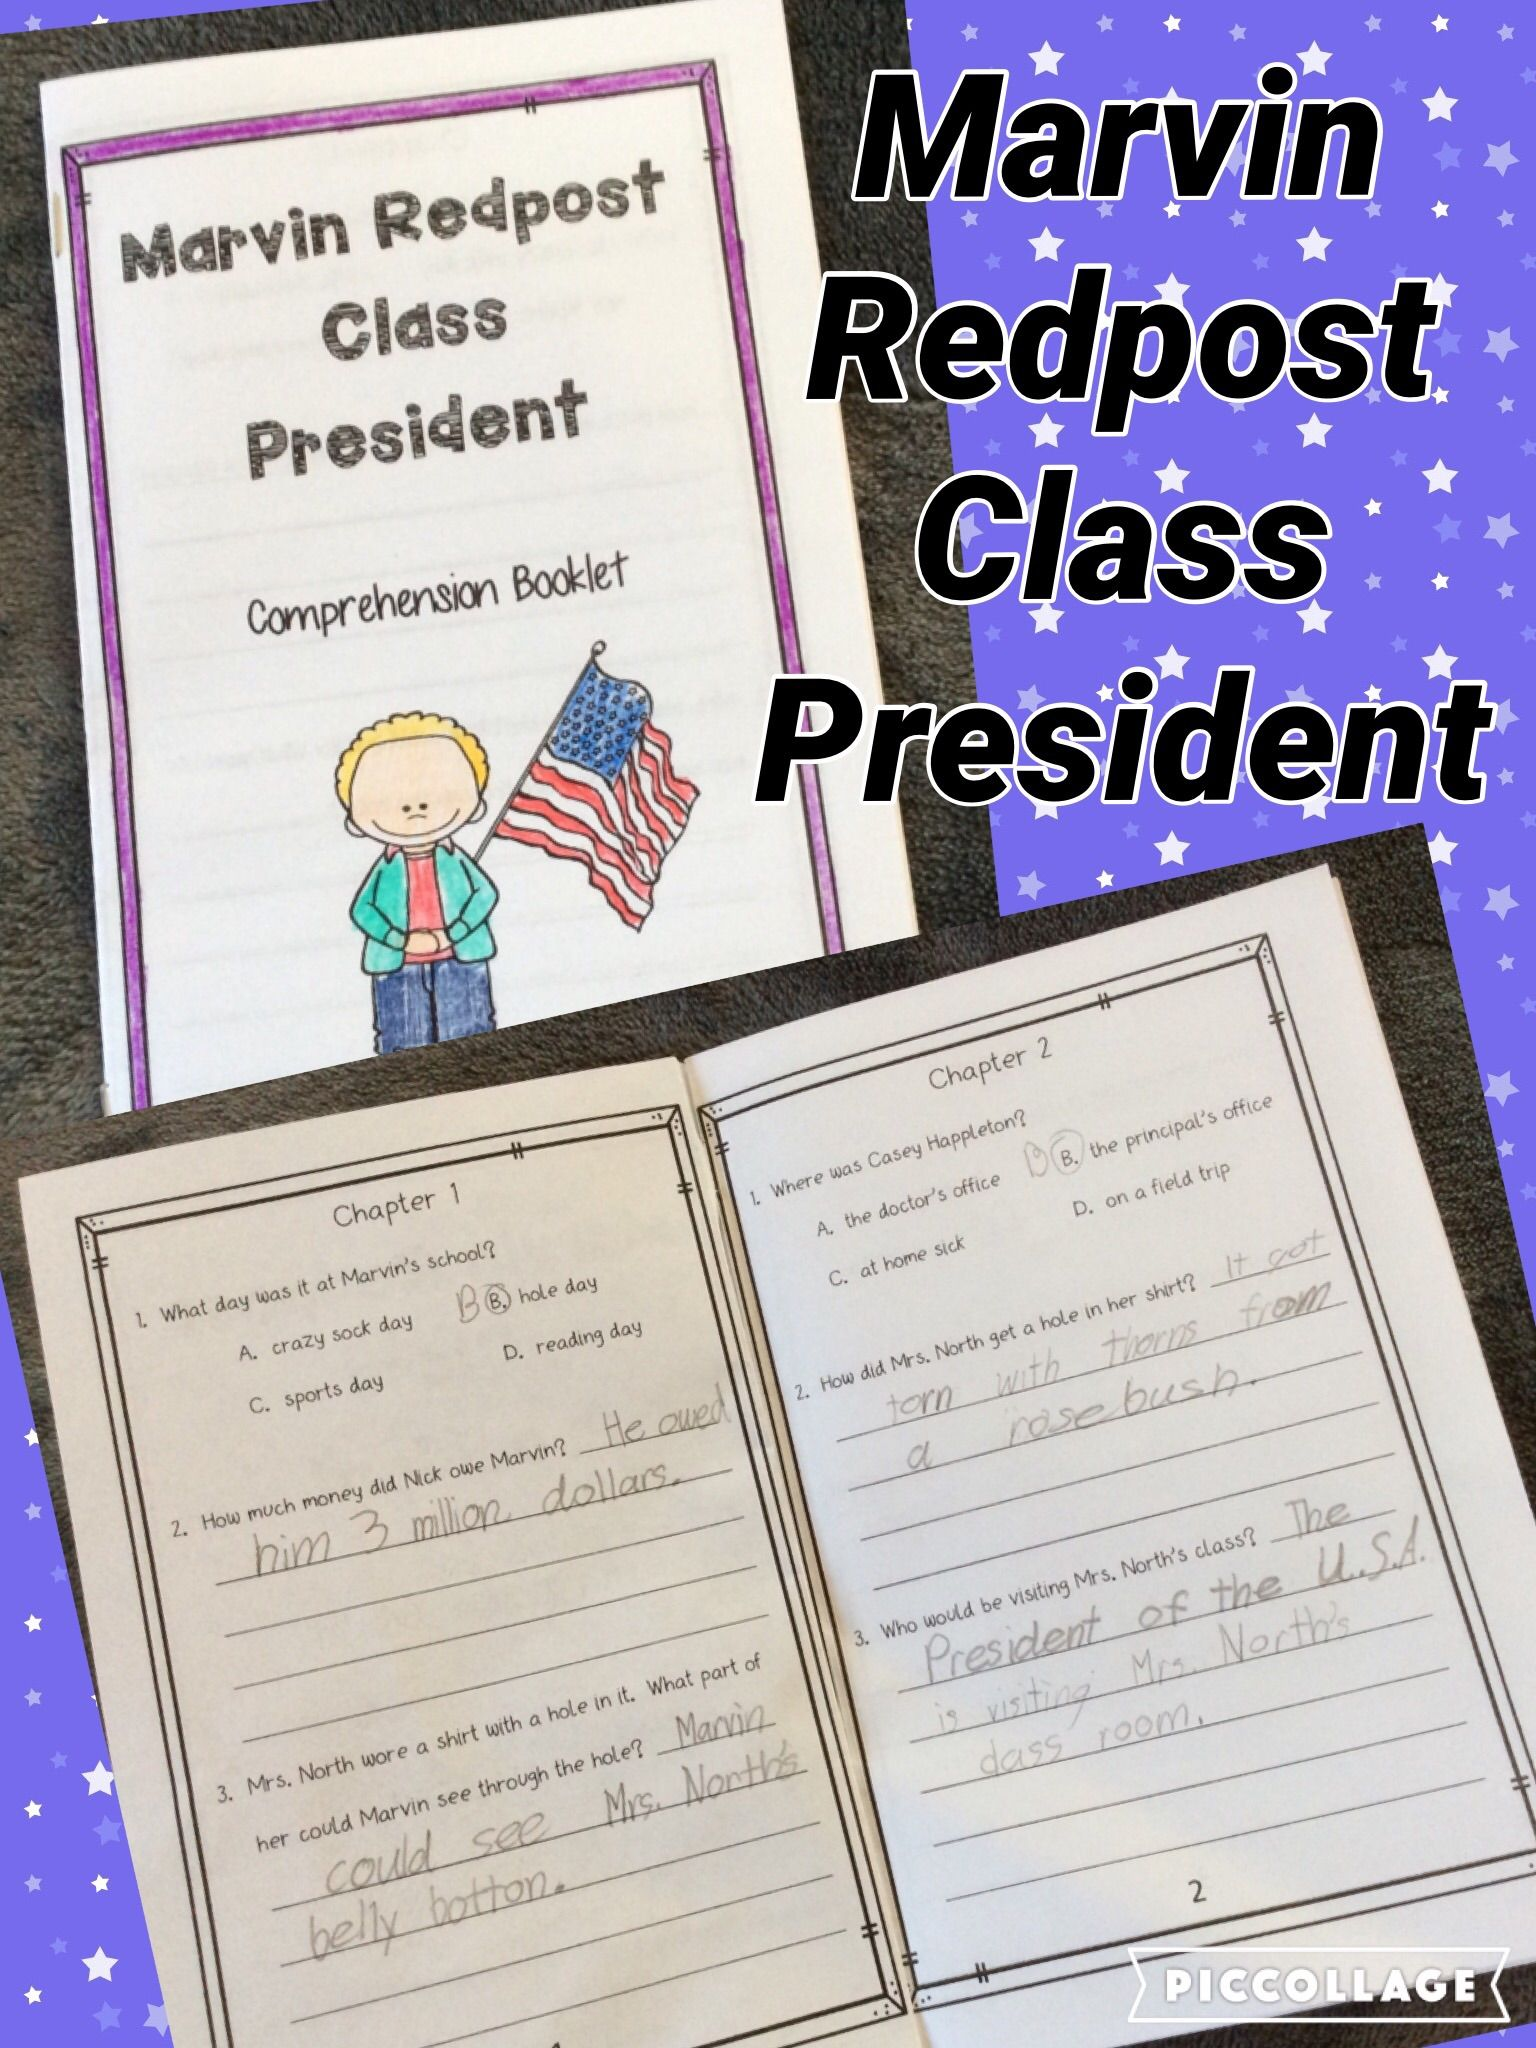 Great activities for Marvin Redpost Class President!